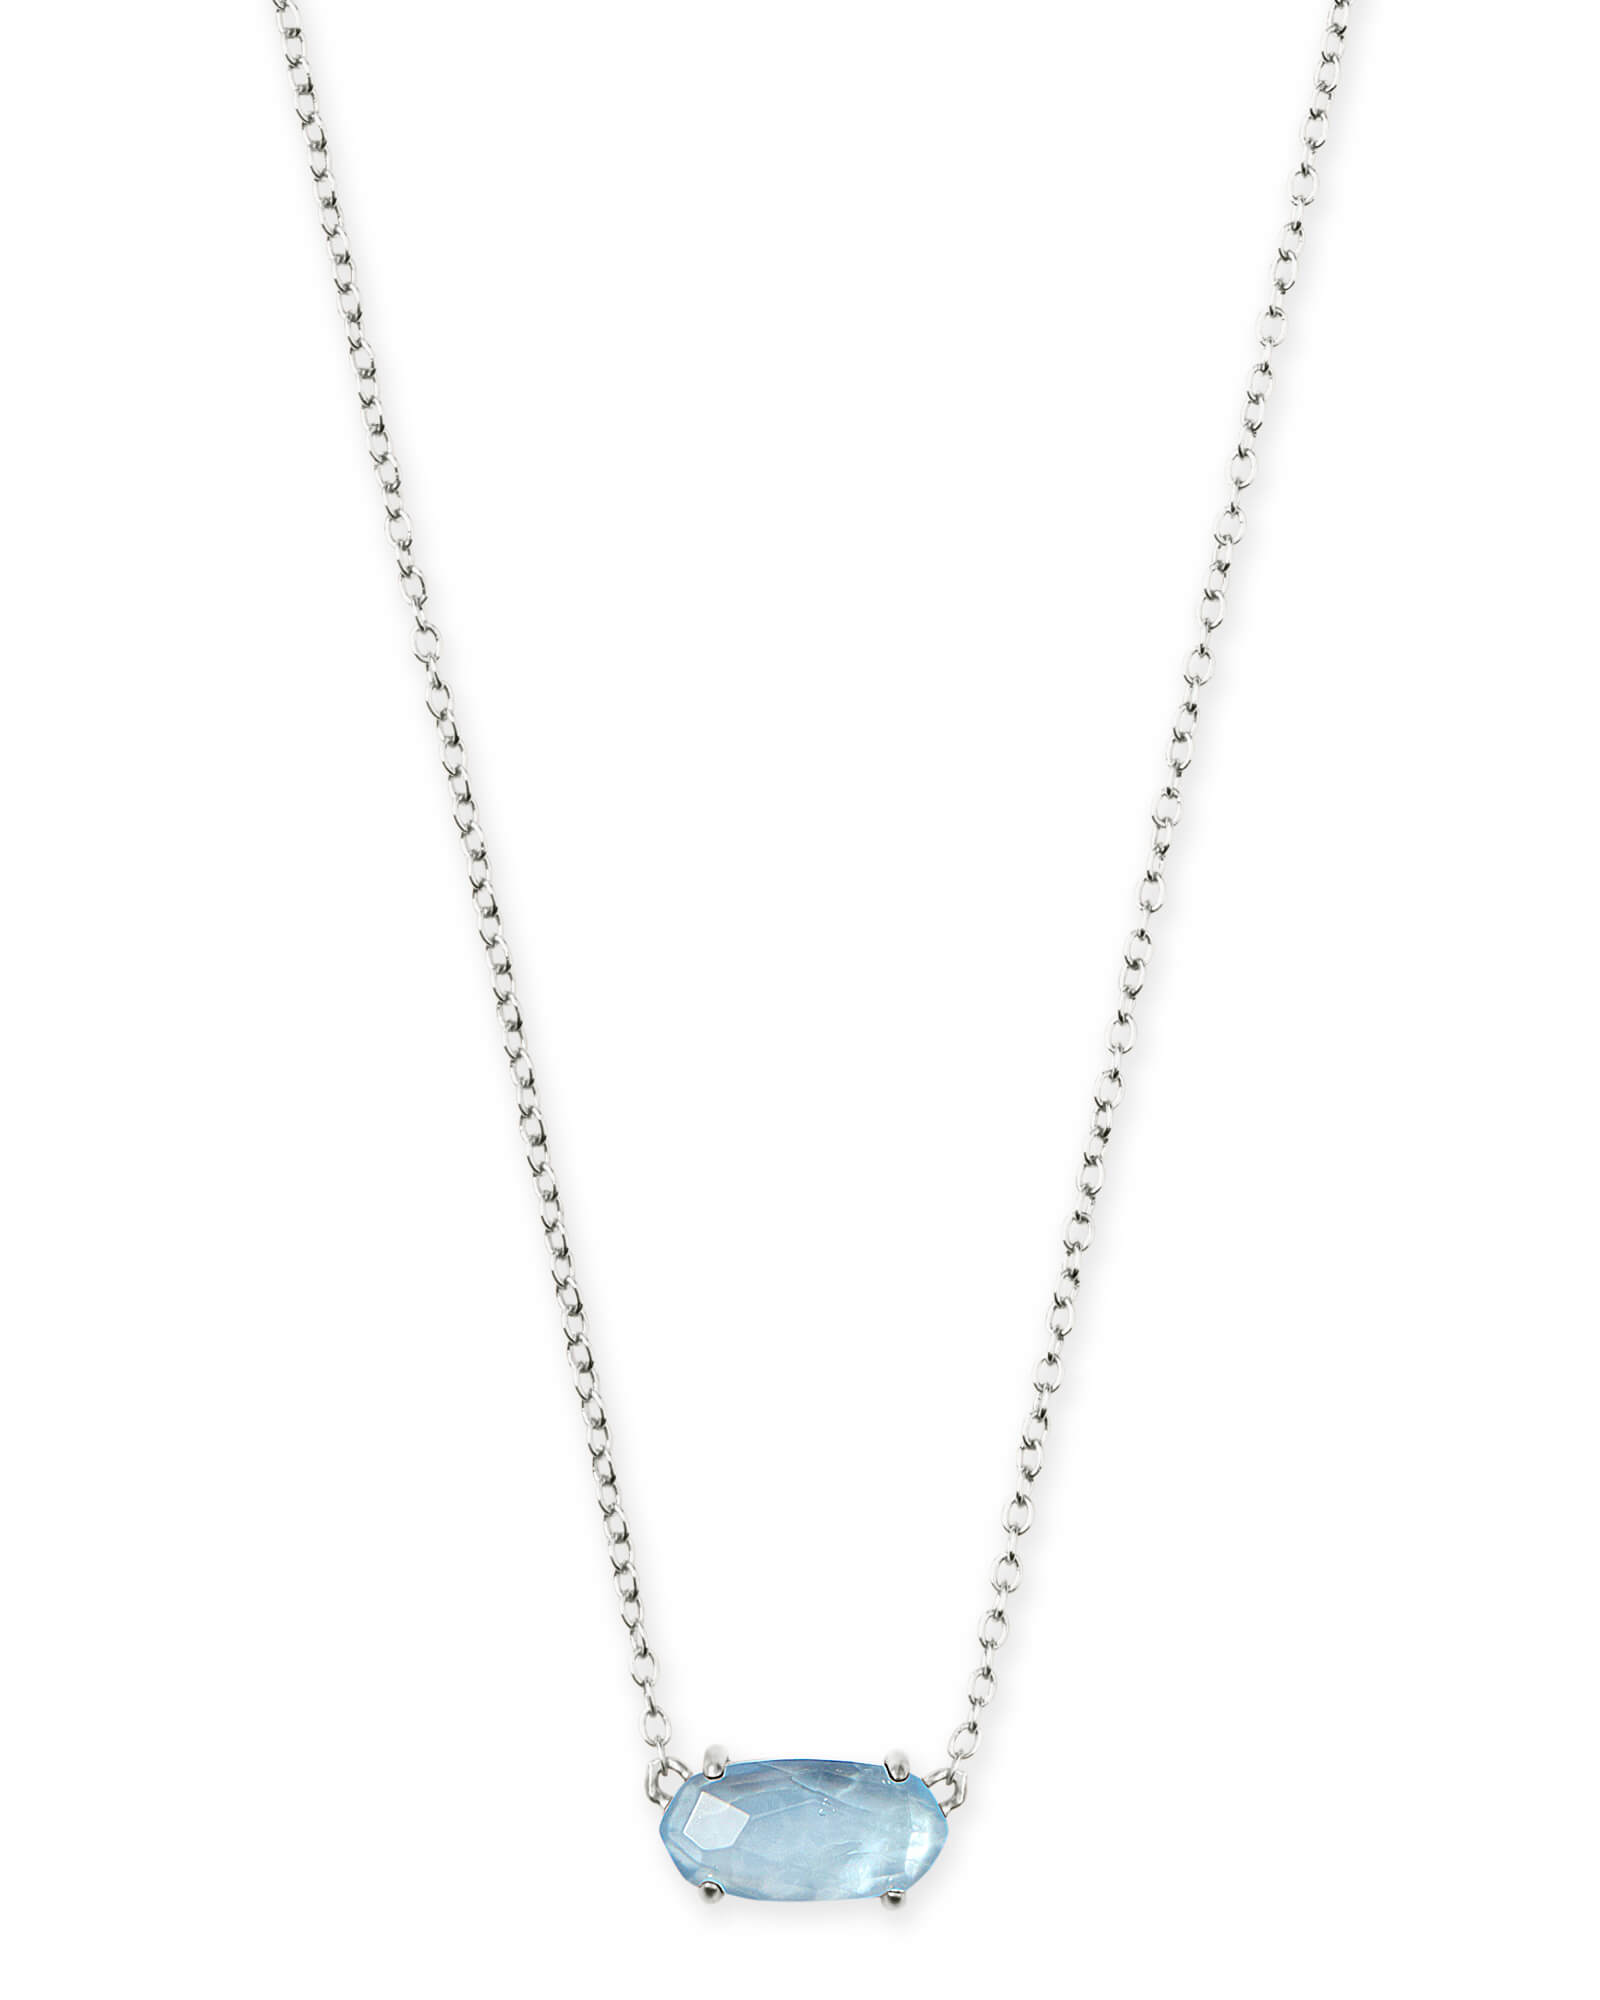 Kendra Scott Ever Silver Pendant Necklace in Sky Blue Illusion by Kendra Scott